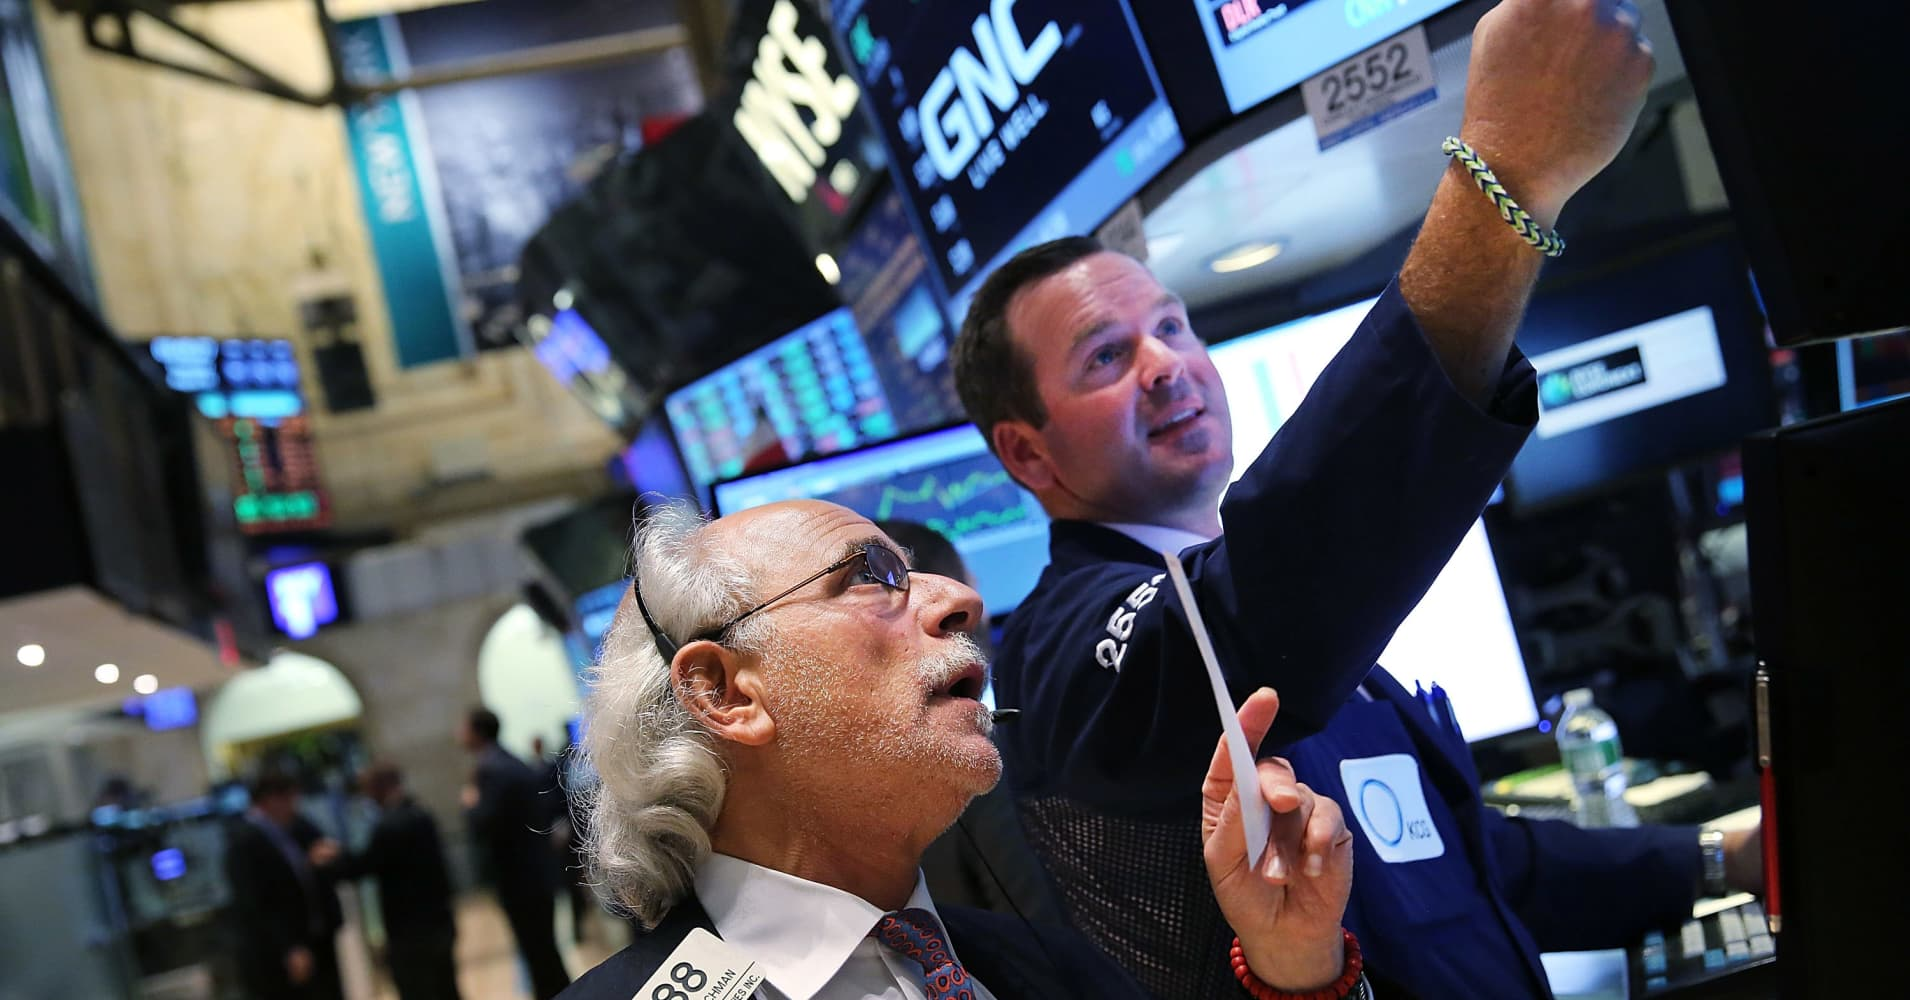 BofA: History says the S&P could reach 3,000 sooner than you think